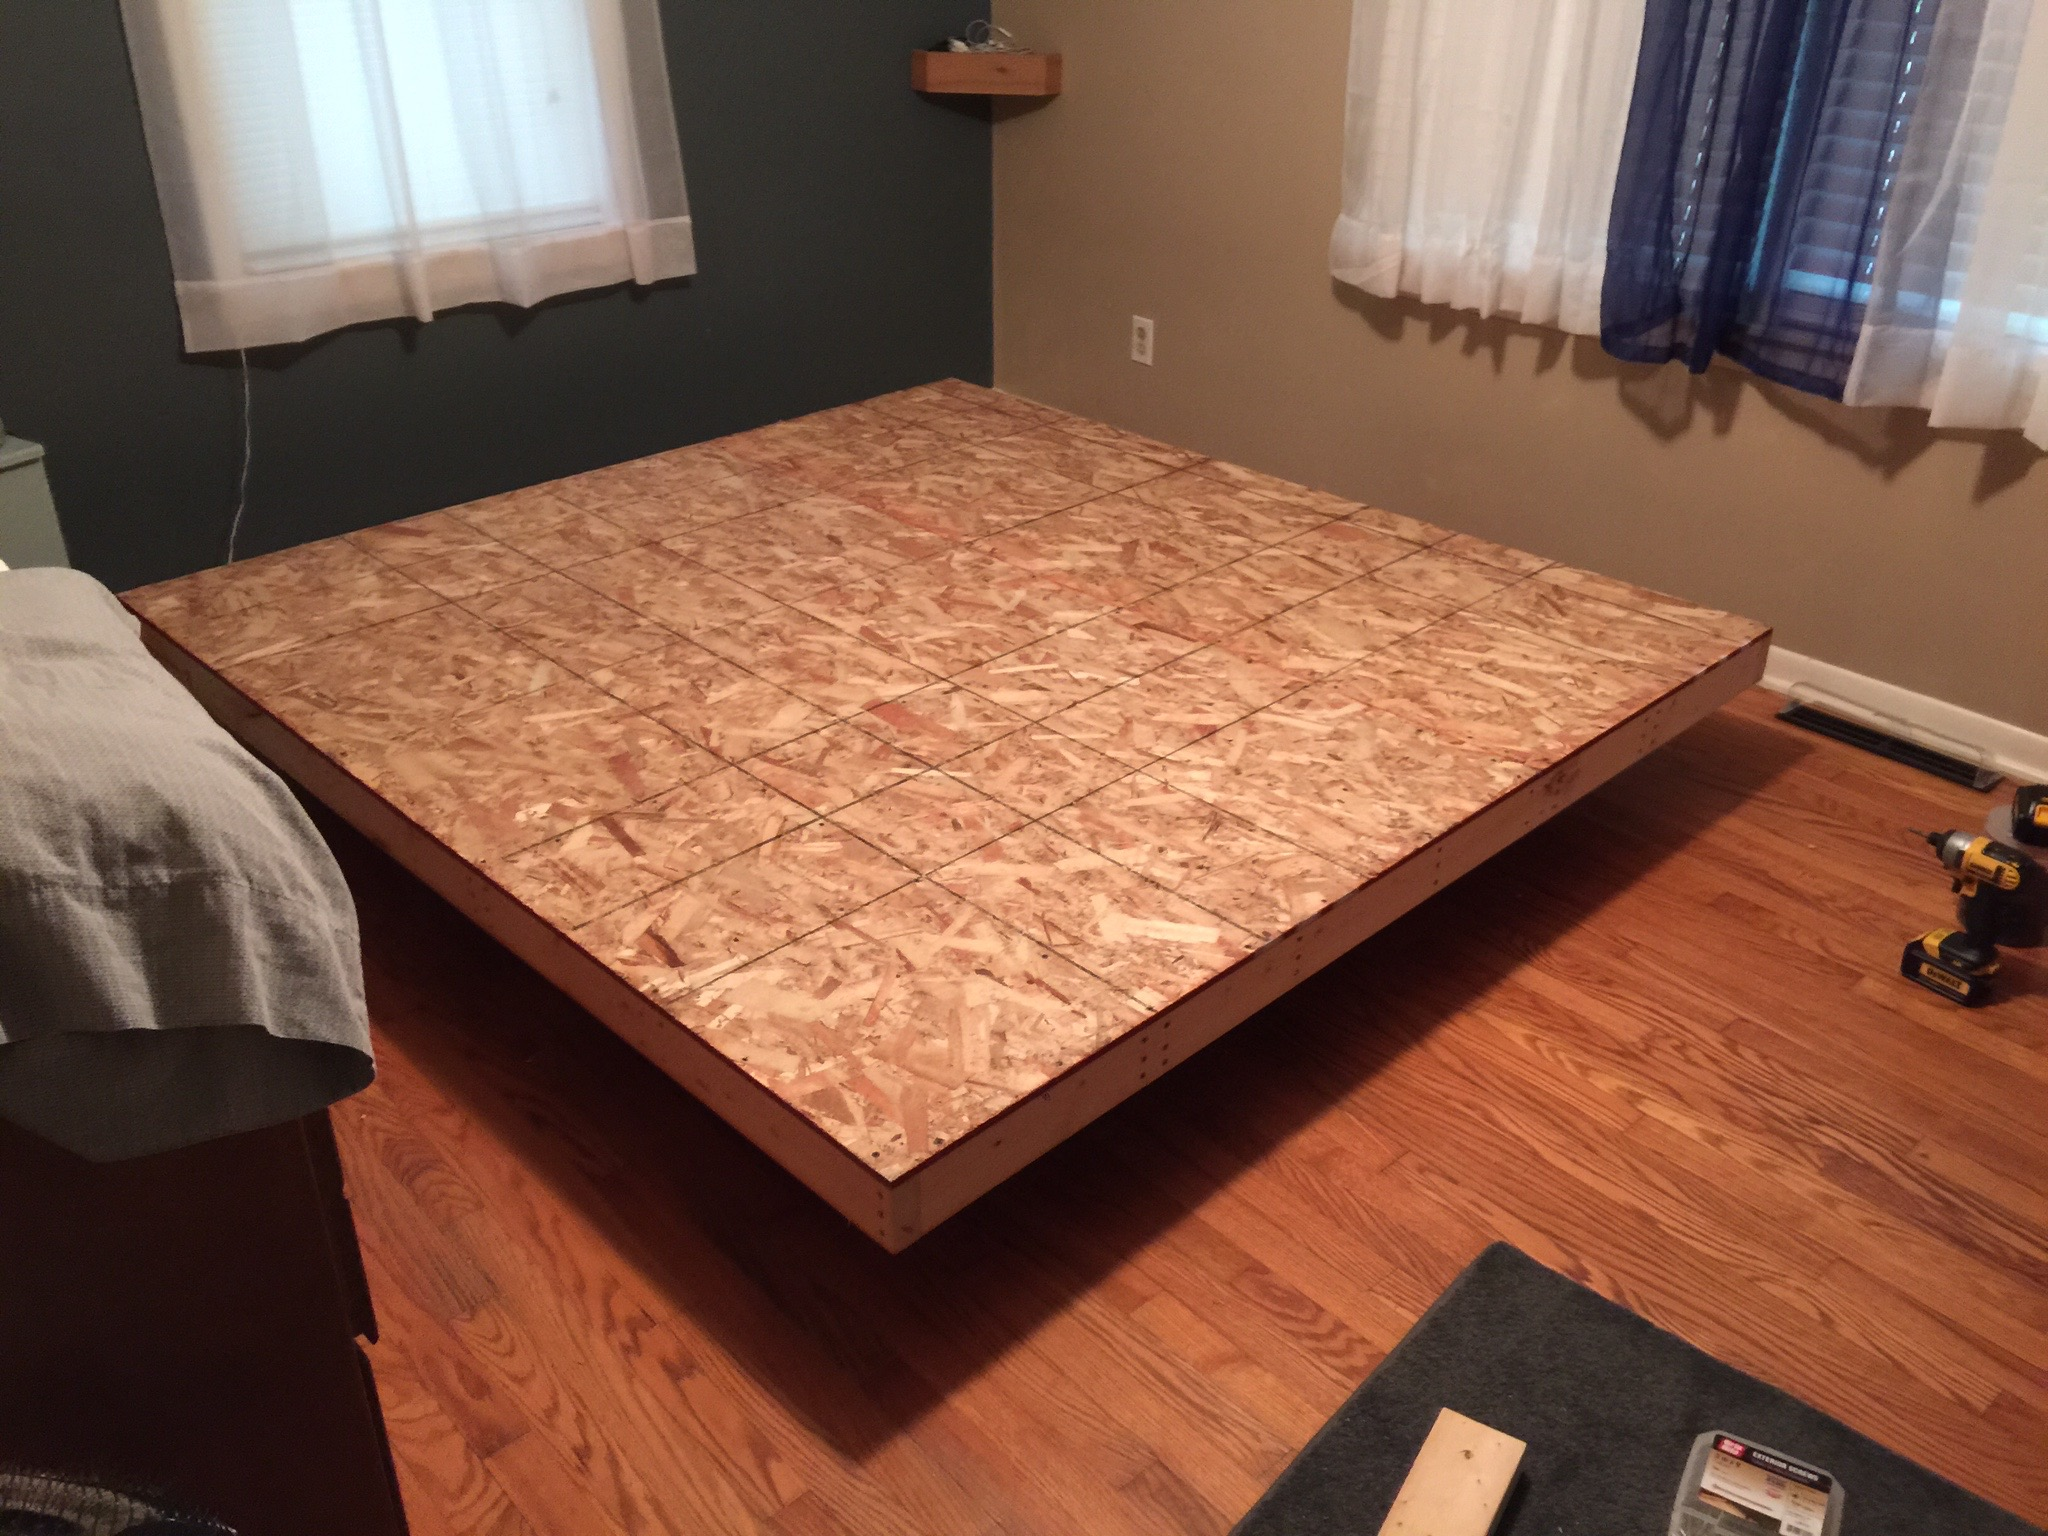 I Made A DIY Floating Bed From Scratch In 4 Days